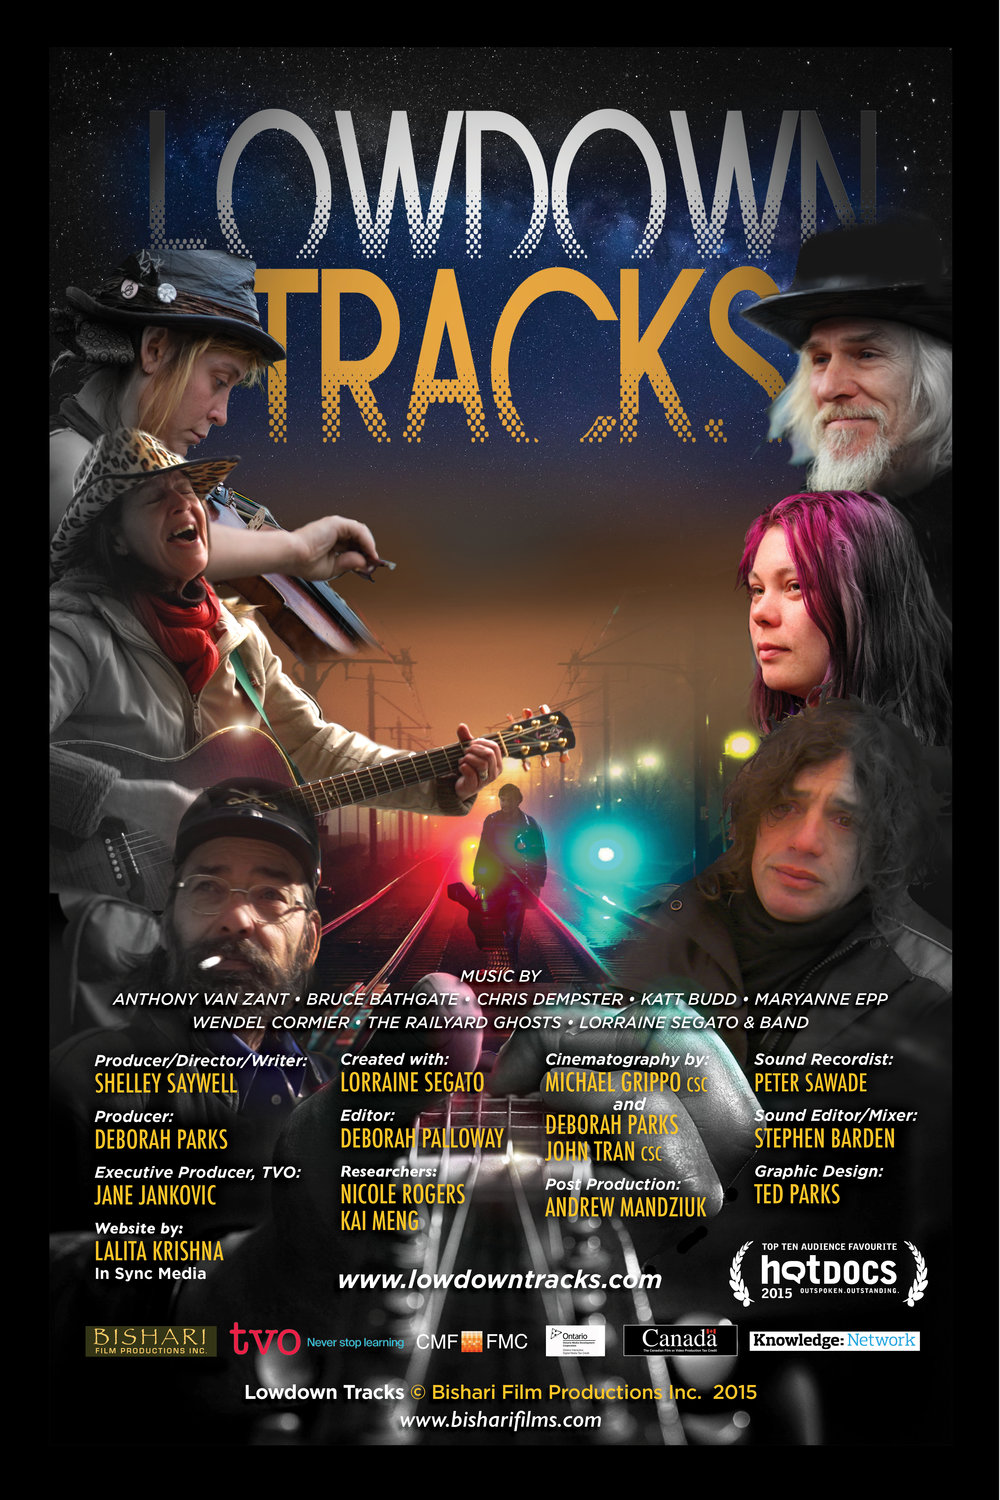 Lowdown Tracks Poster 12x18 June 2015.jpg